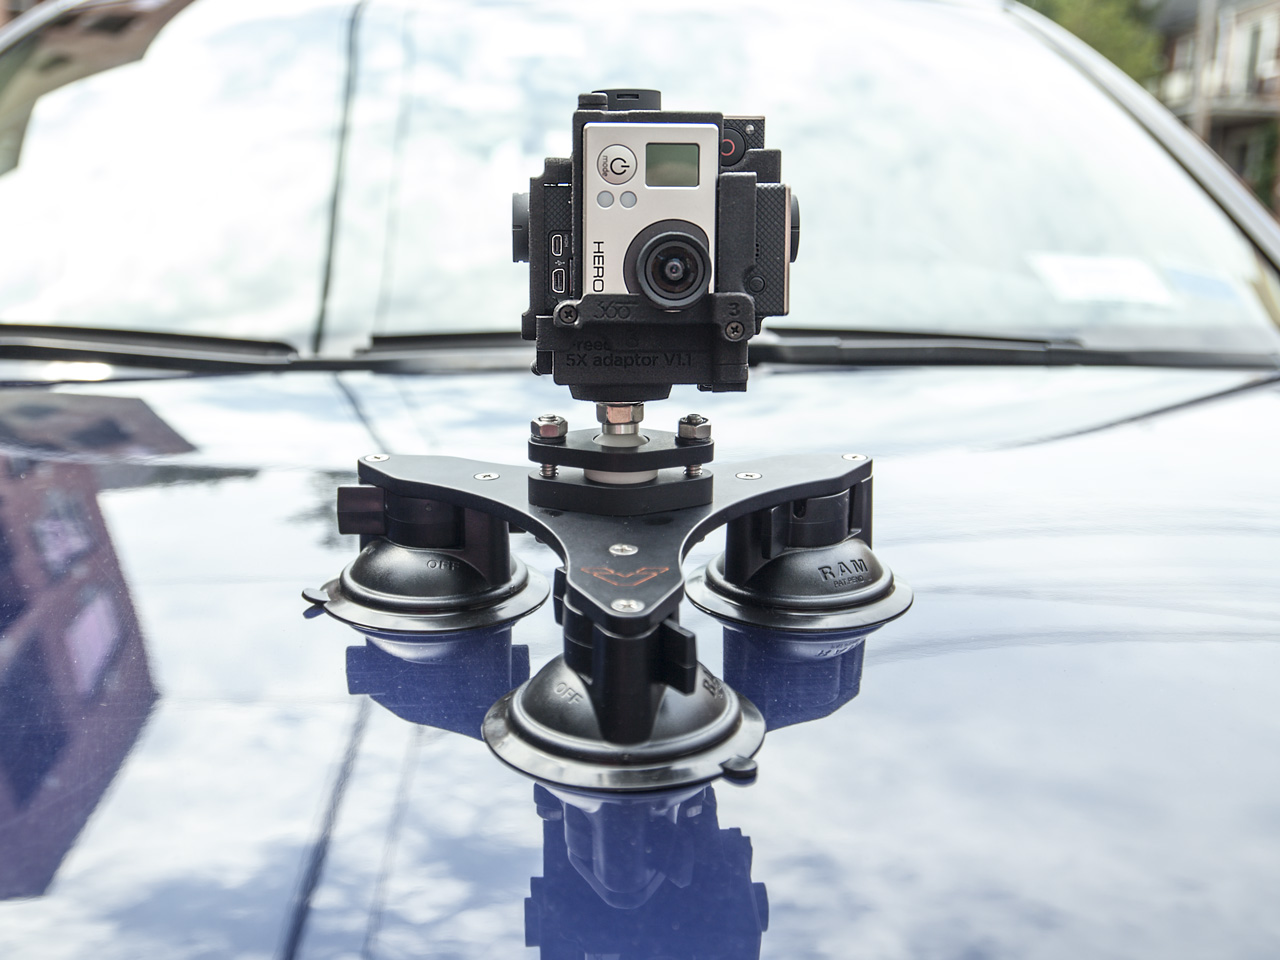 Tribase Suction Cup Mount